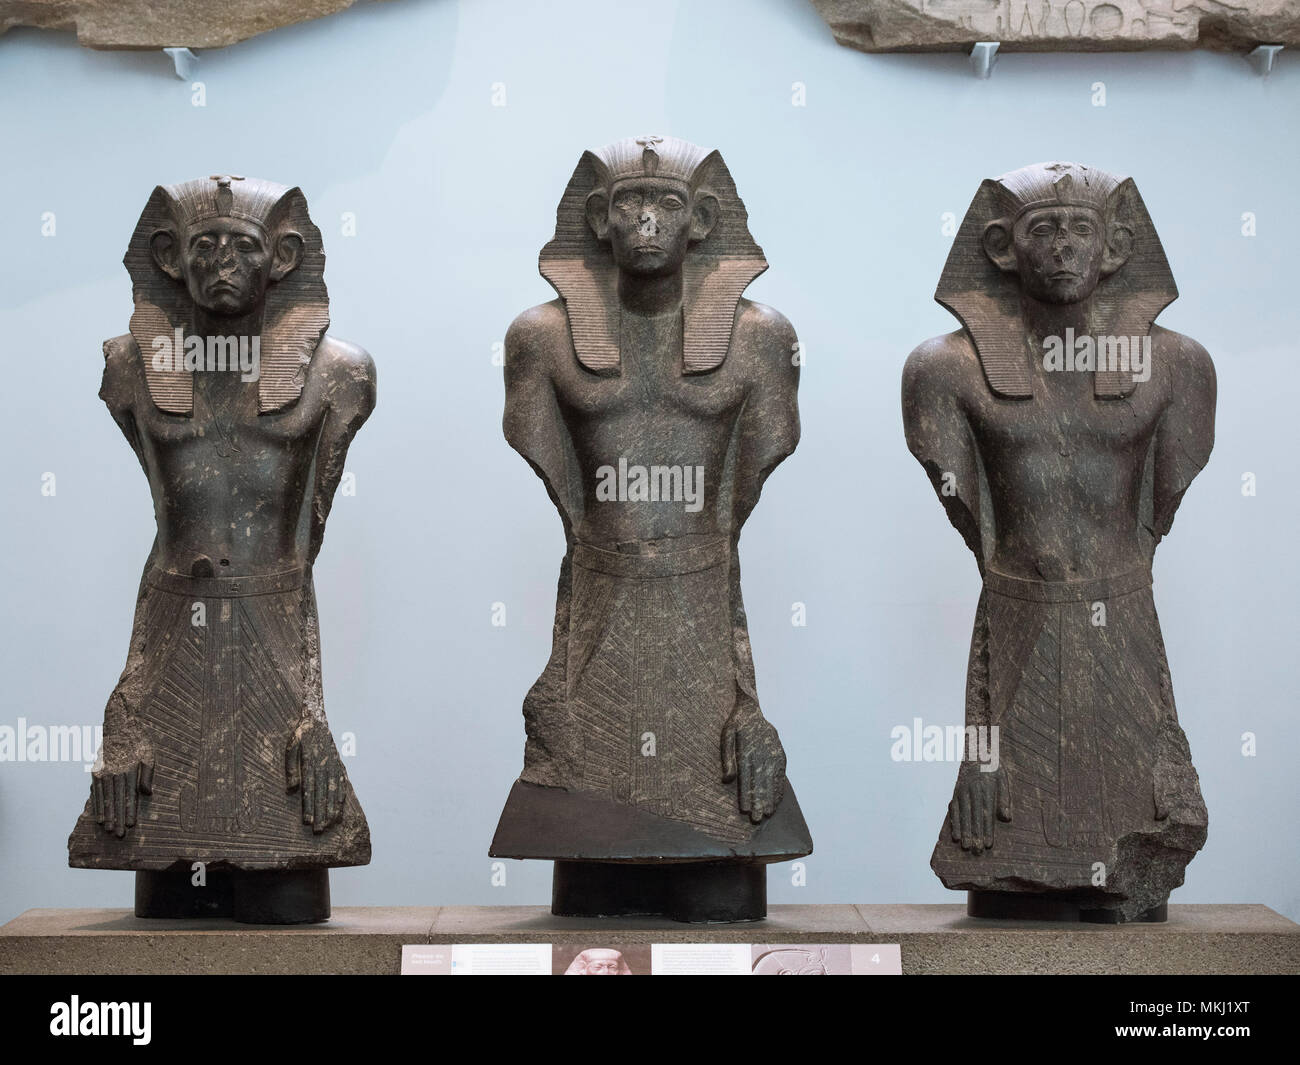 London. England. British Museum. Three statues of Egyptian Pharaoh Senwosret III (or Senusret / Sesostris), wearing a nemes head cloth, ca. 1874-1855  Stock Photo